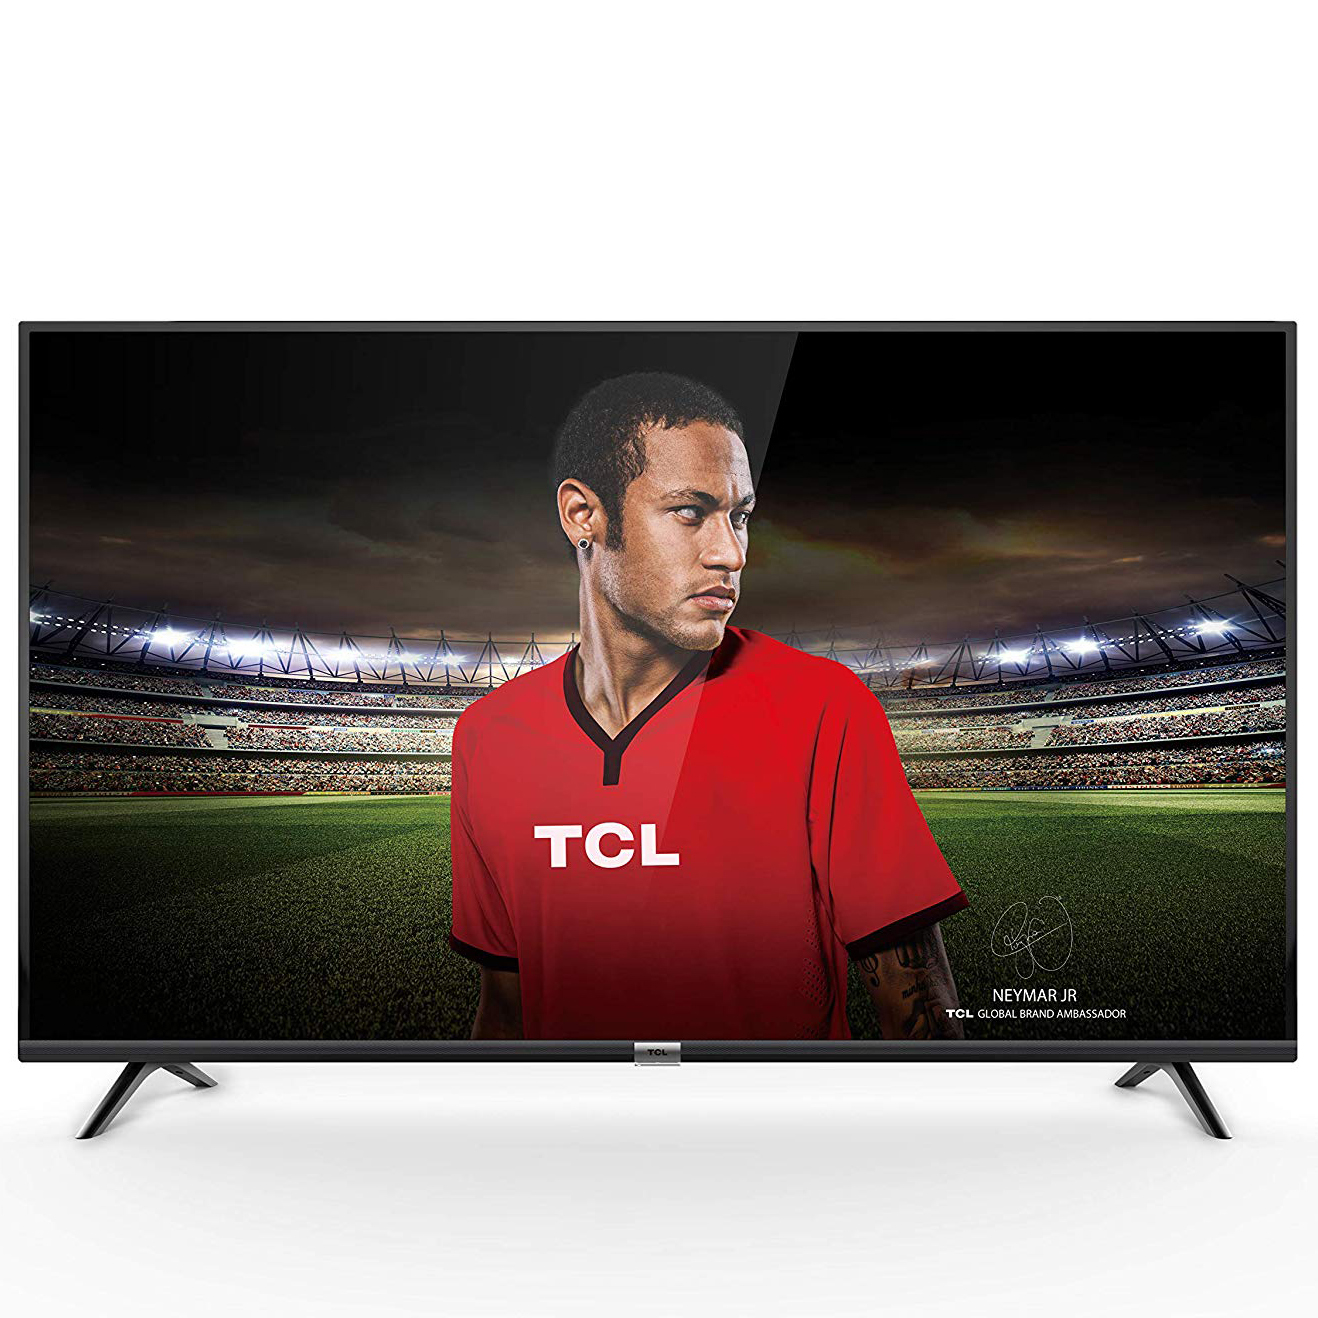 Last chance! Pick up a 55 inch TCL 4K TV for just £299 on